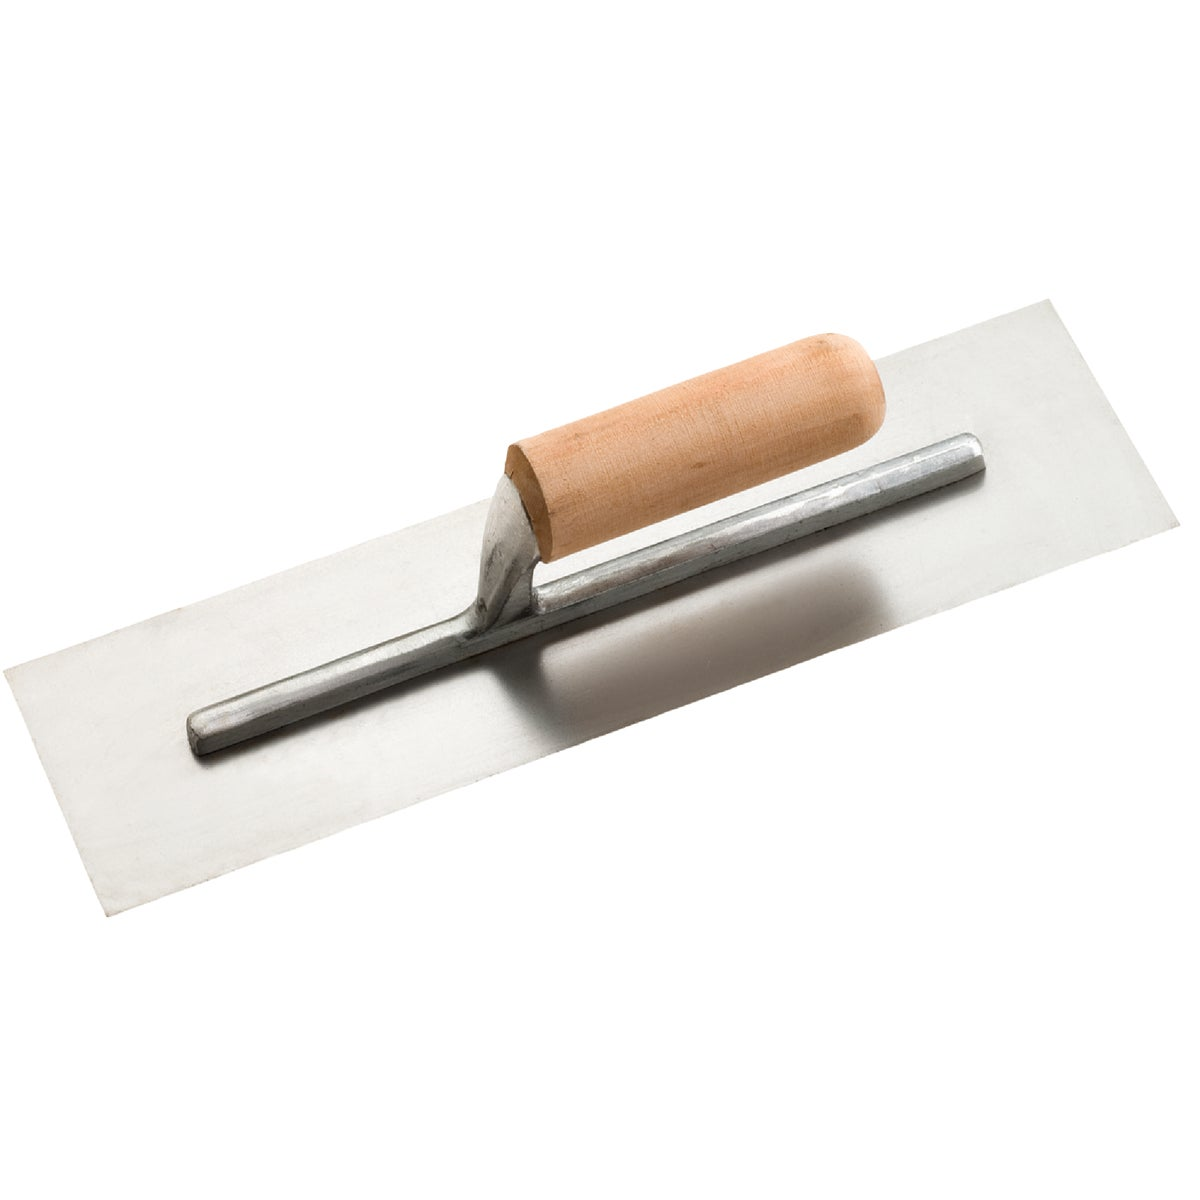 "14"" FINISHING TROWEL - 322573 by Do it Best"